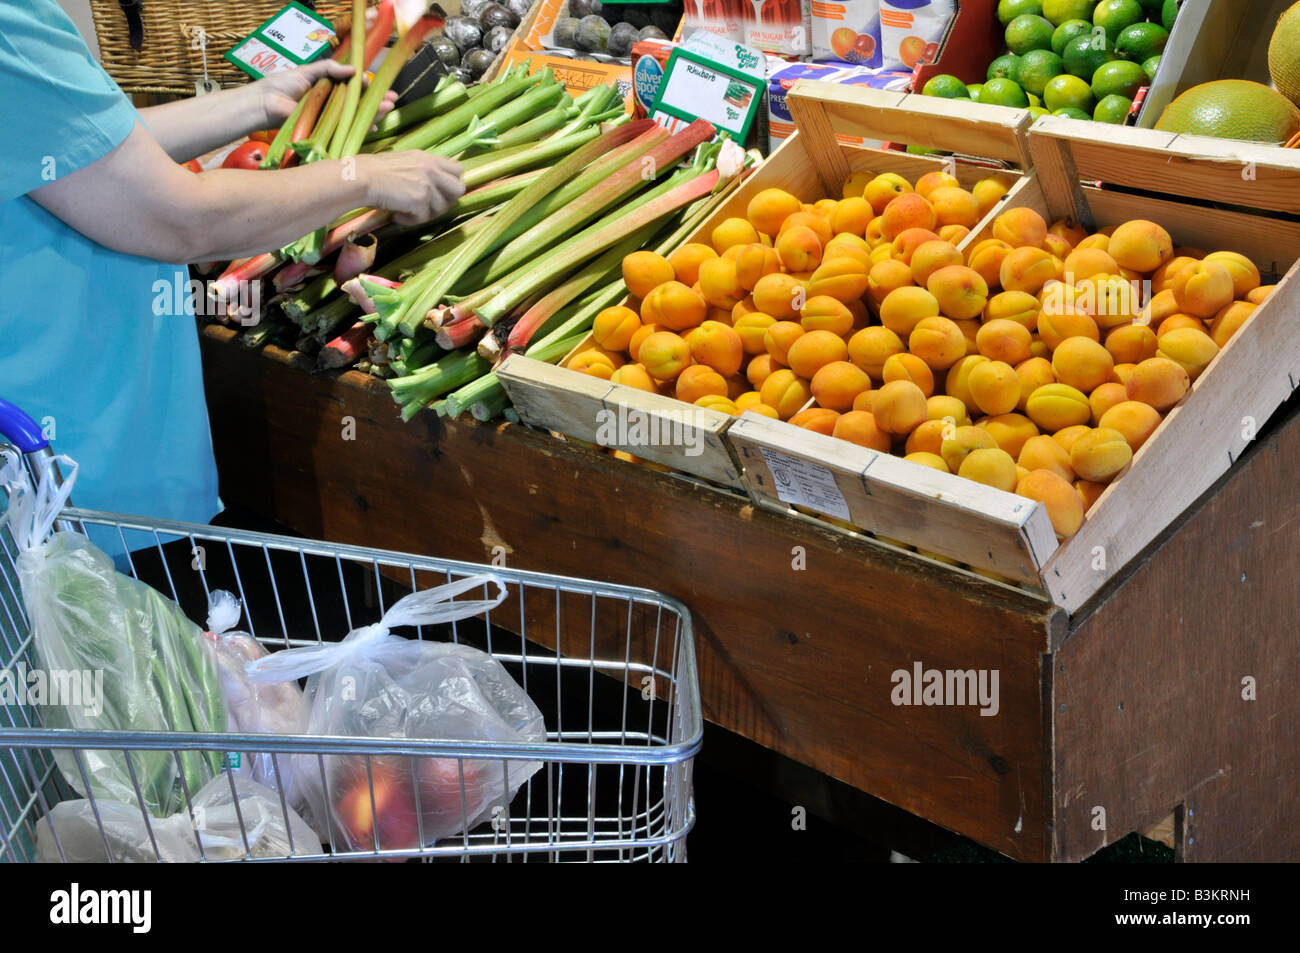 Interior of retail farm shop fruit produce on display woman shopper selecting rhubarb Stock Photo